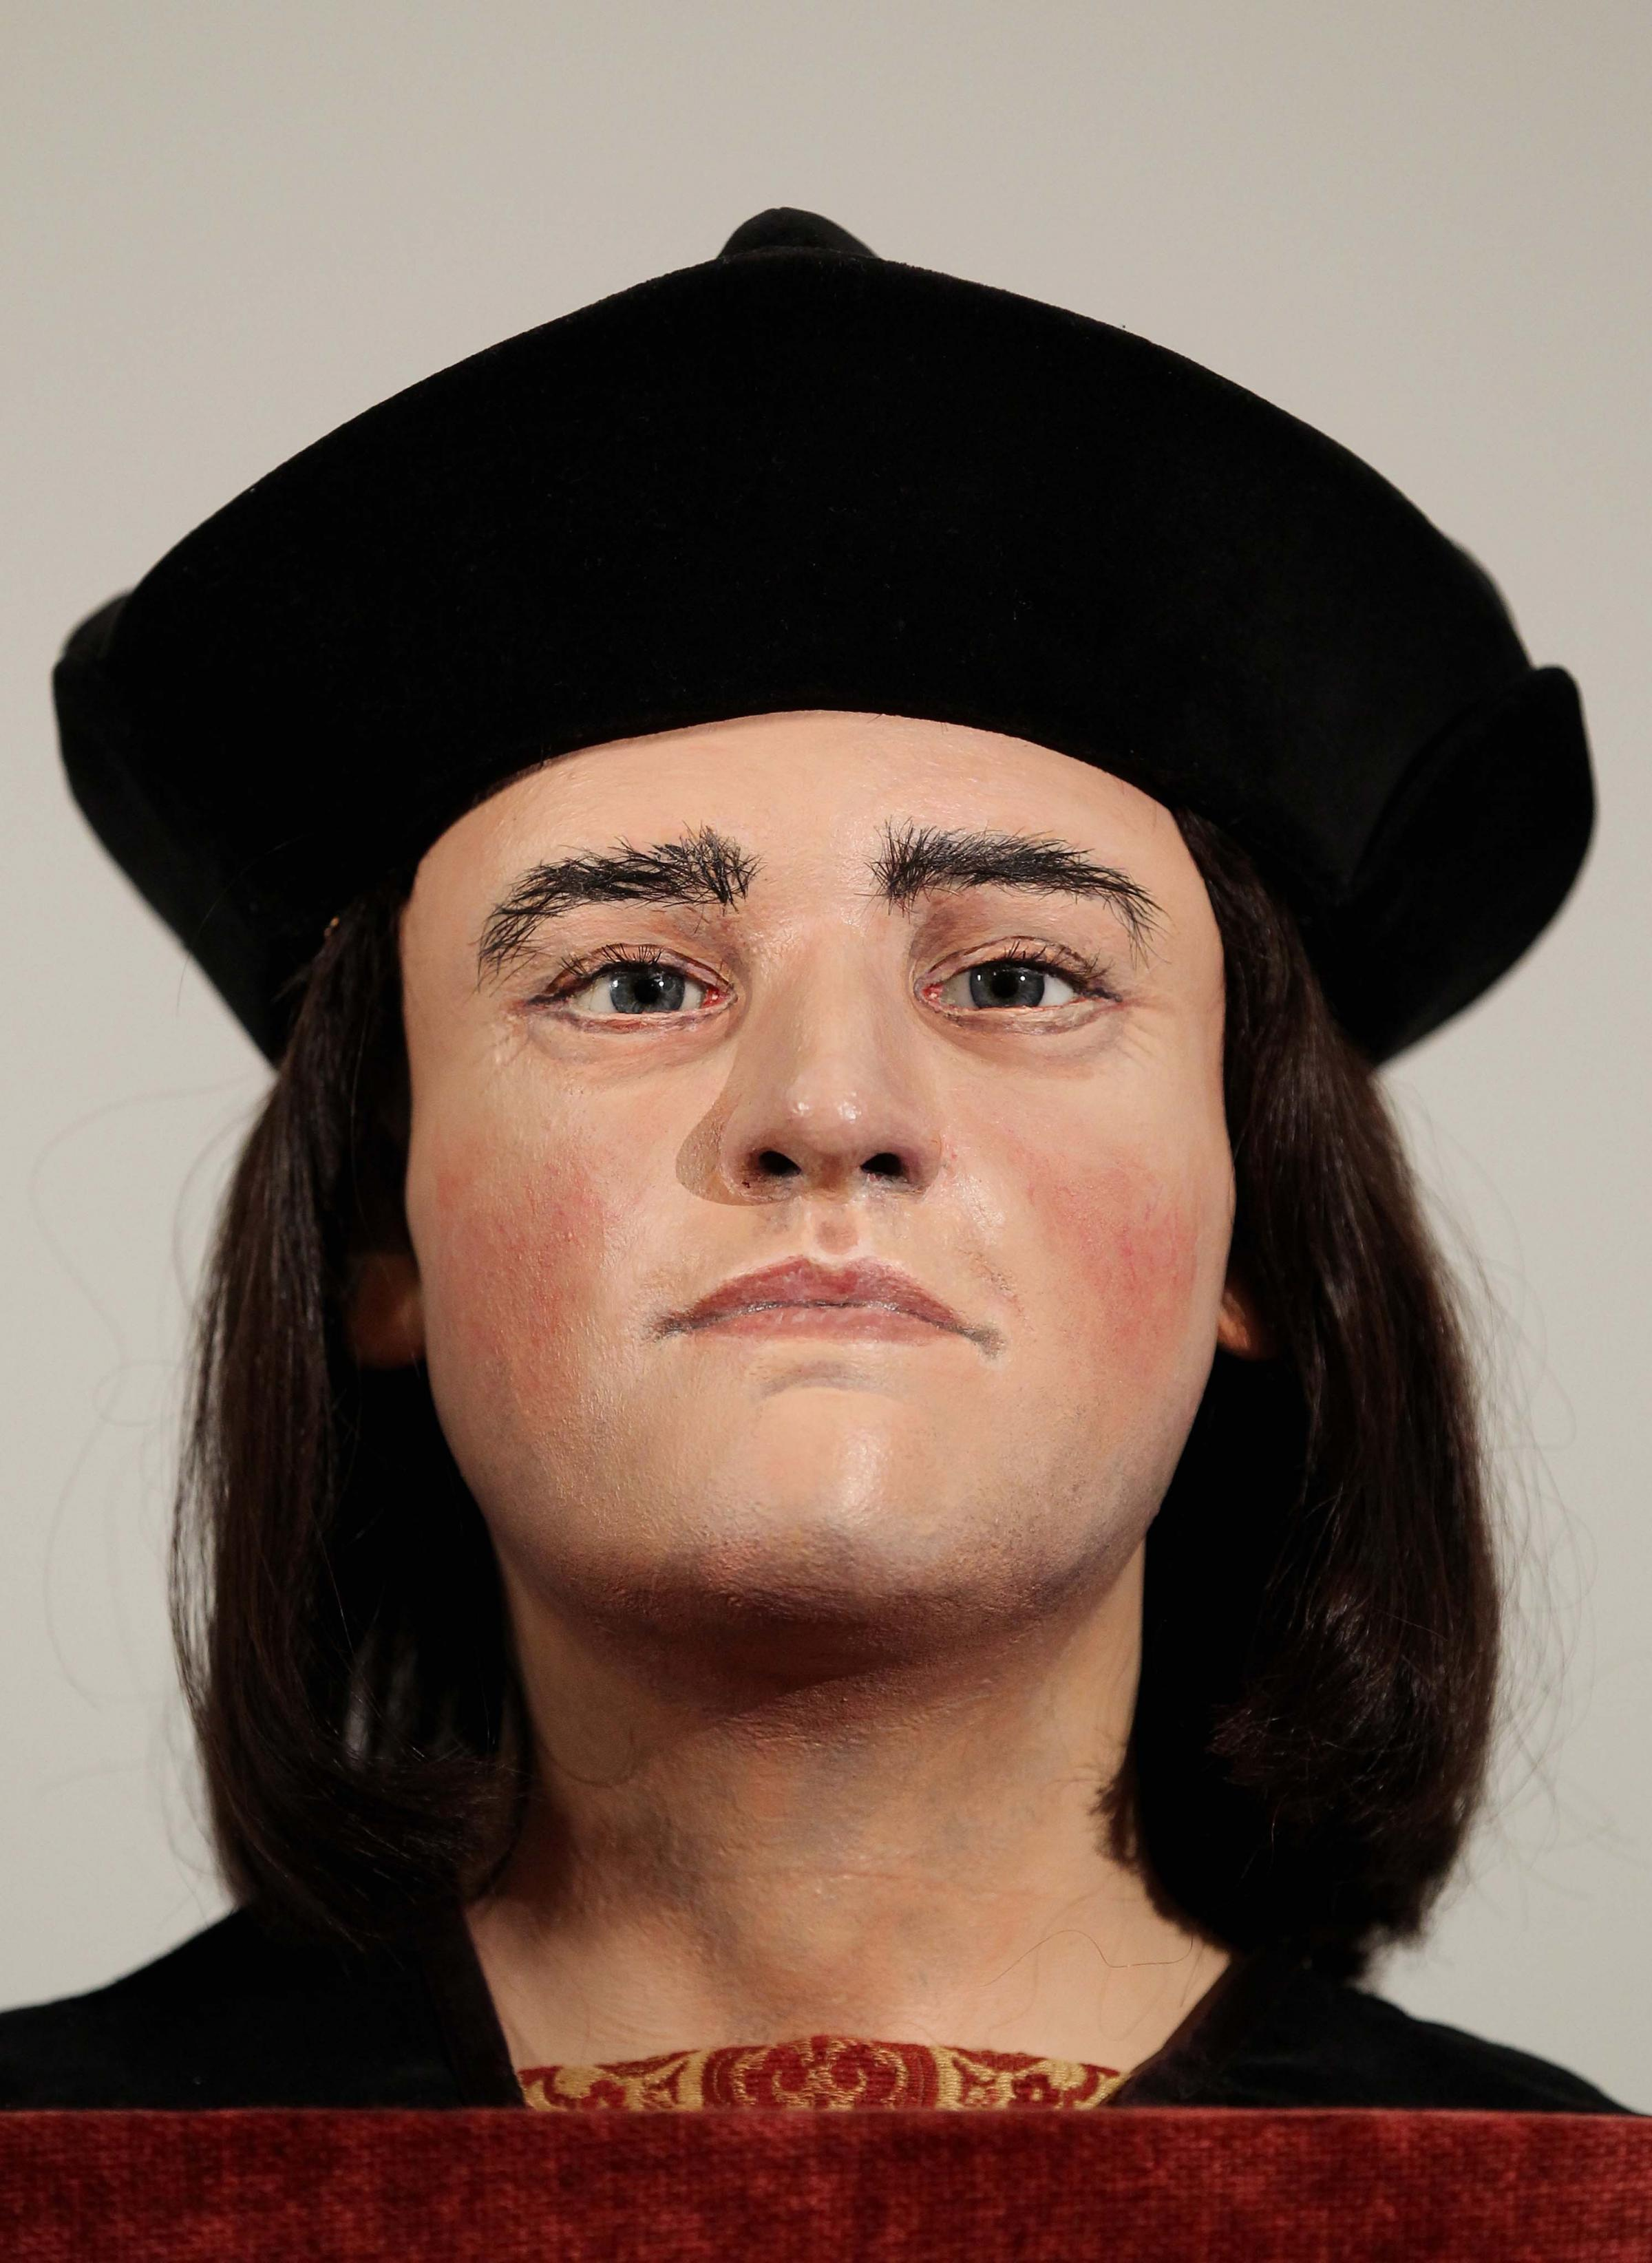 FINAL BATTLE: A model of the face of King Richard III, killed at the Battle of Bosworth in 1485